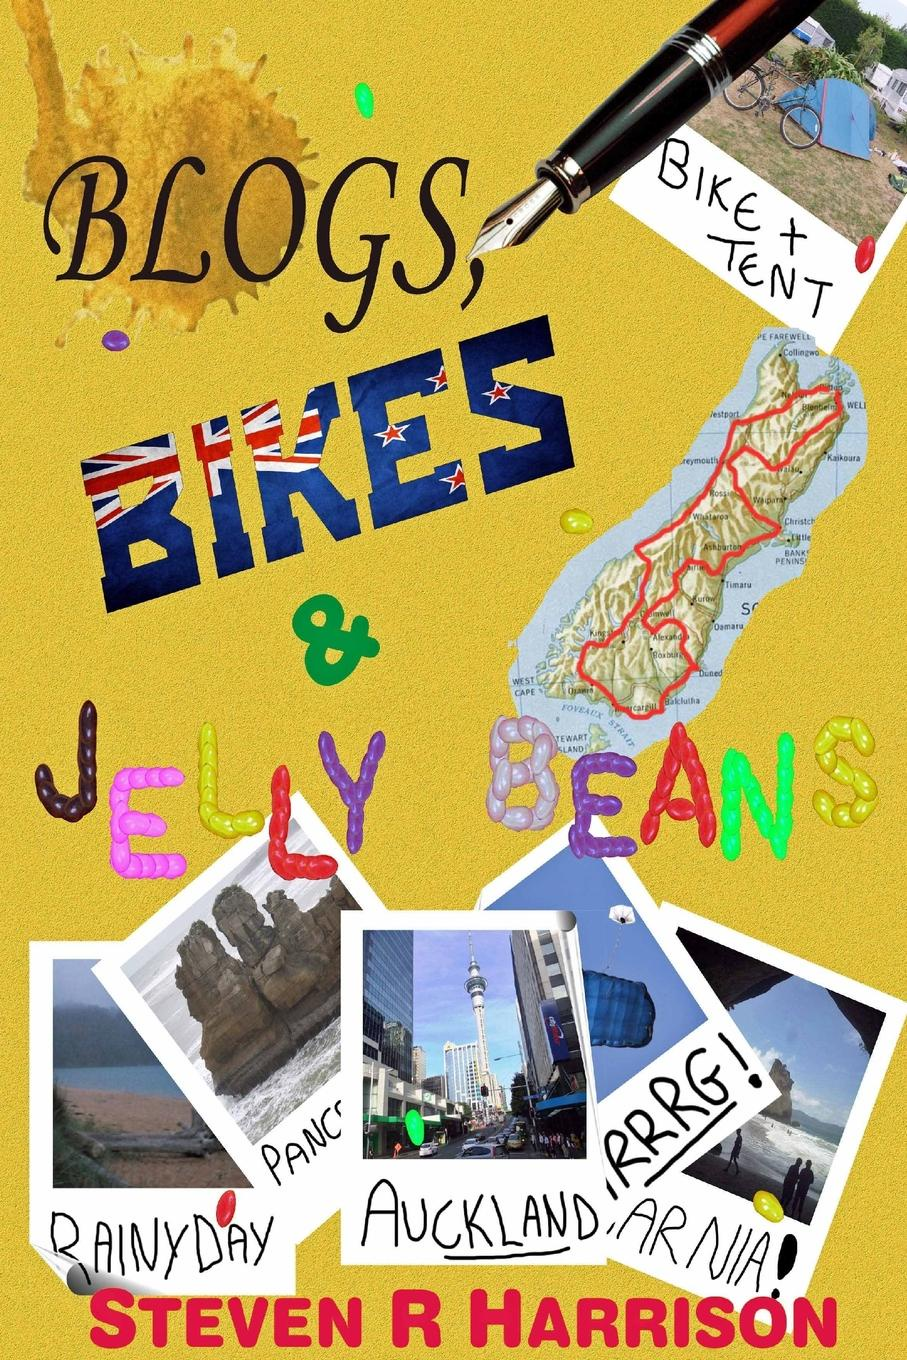 Steven R. Harrison Blogs, Bikes . Jelly Beans.